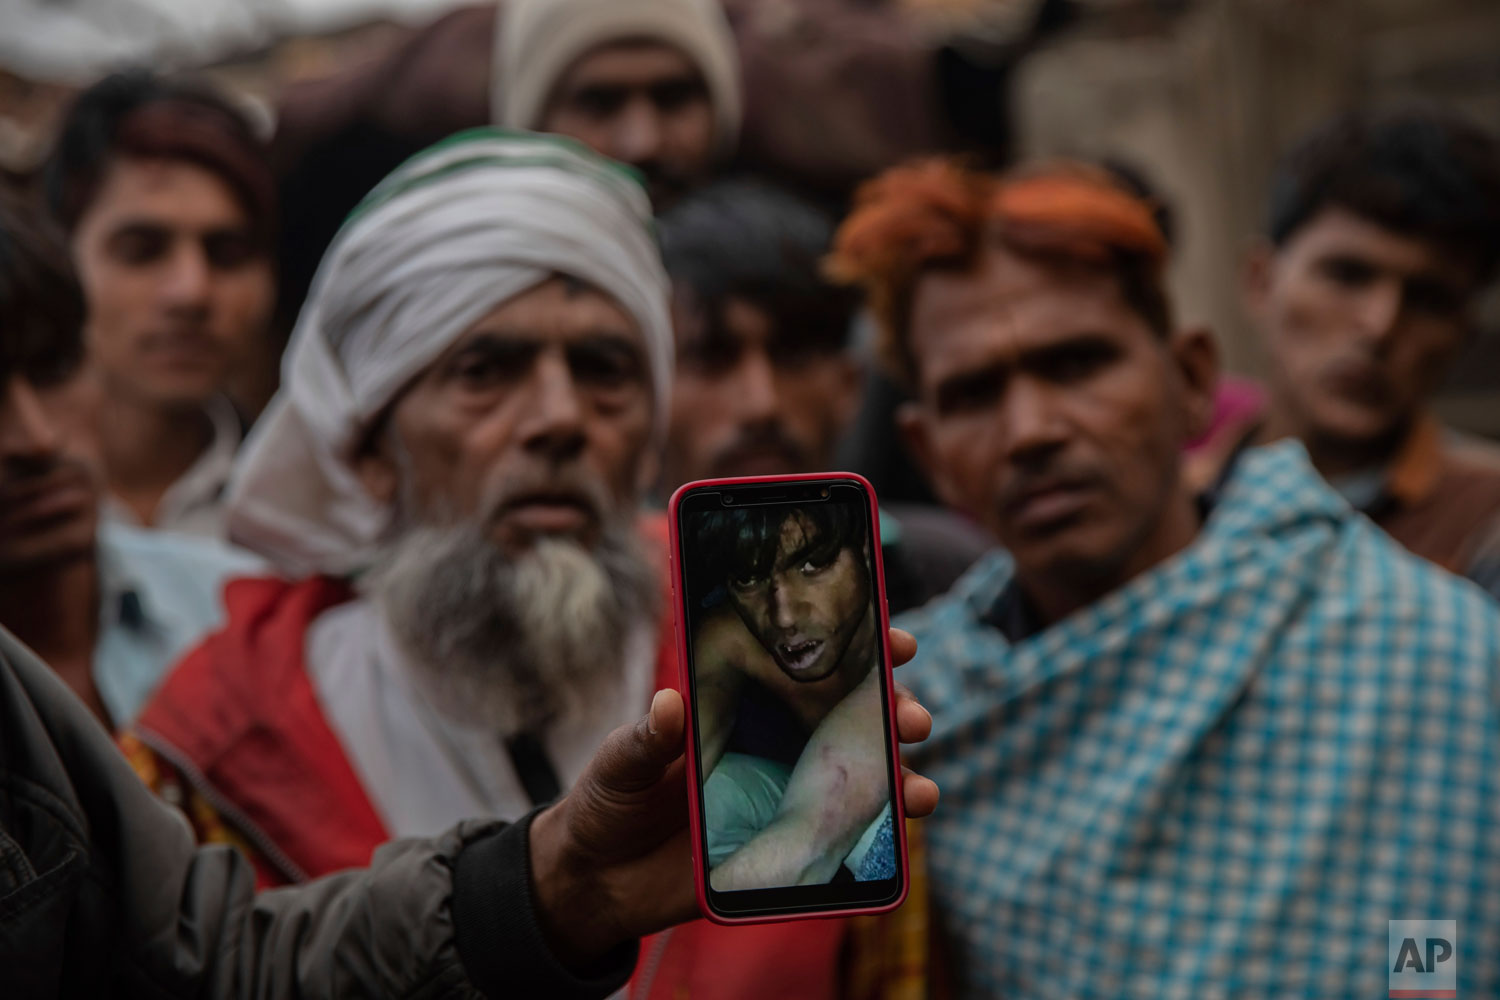 In this Tuesday, Jan. 22, 2019 photo, a man holds a phone showing a video of Muslim farmer Saghir Khan, 25, moments after being beaten, Mirzapur, India. Most of the attacks by so-called cow vigilantes from Hindu groups have targeted Muslims, who make up 14 percent of India's 1.3 billion people. Hindus make up about 80 percent of the population. (AP Photo/Bernat Armangue)